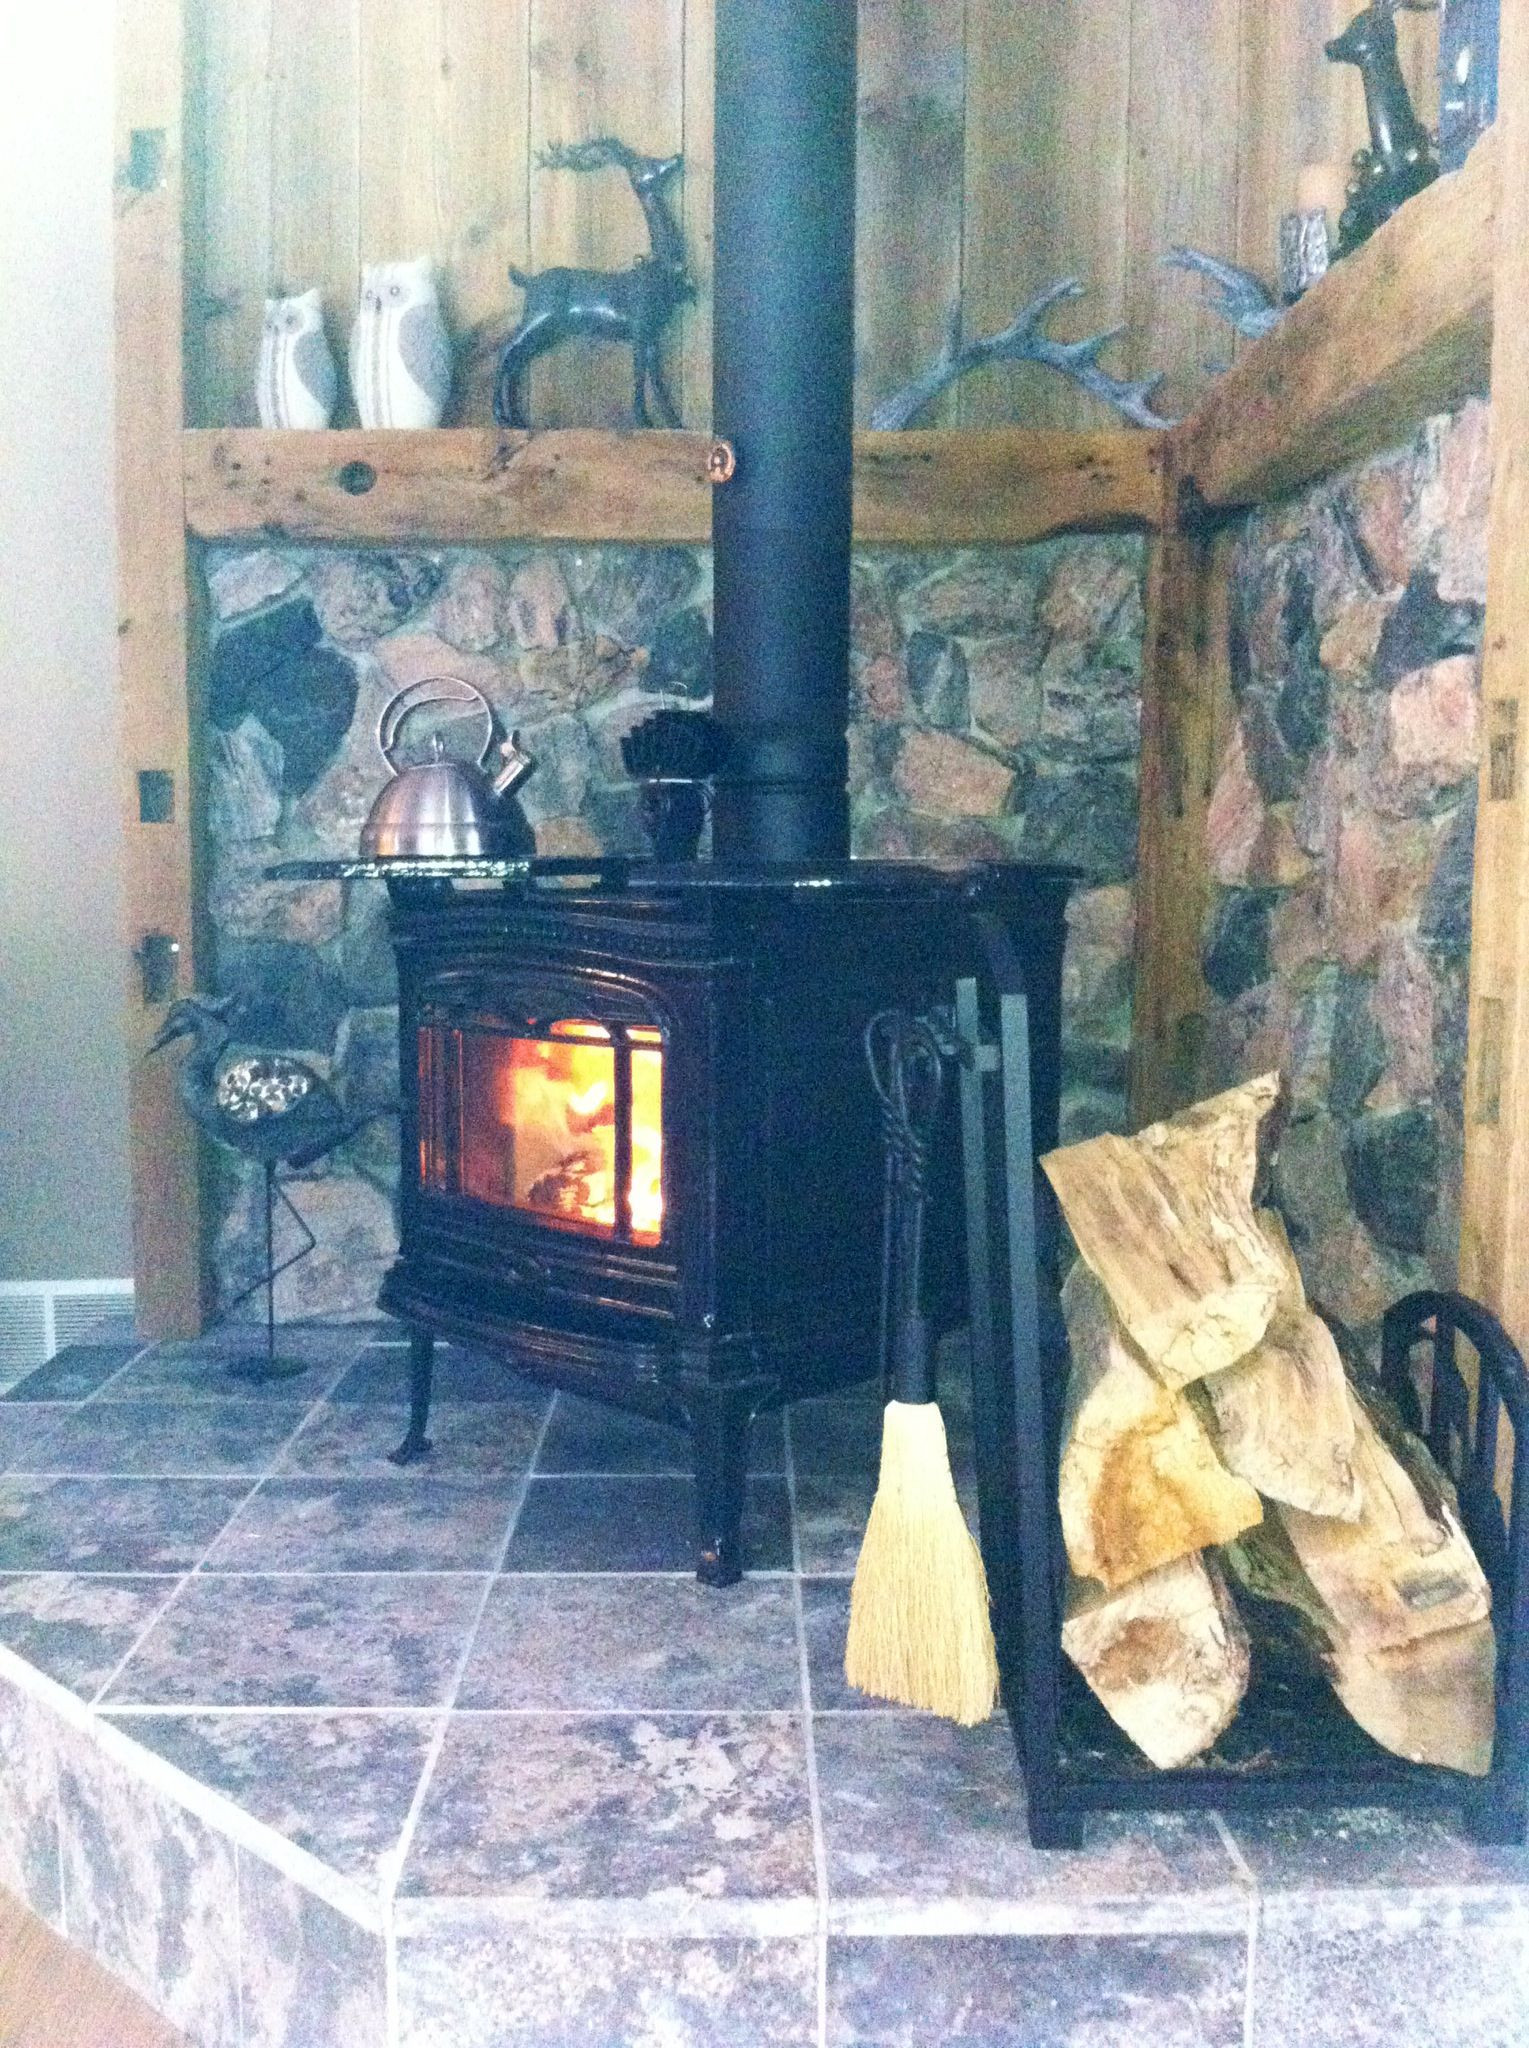 Rustic stone surround and wood stove